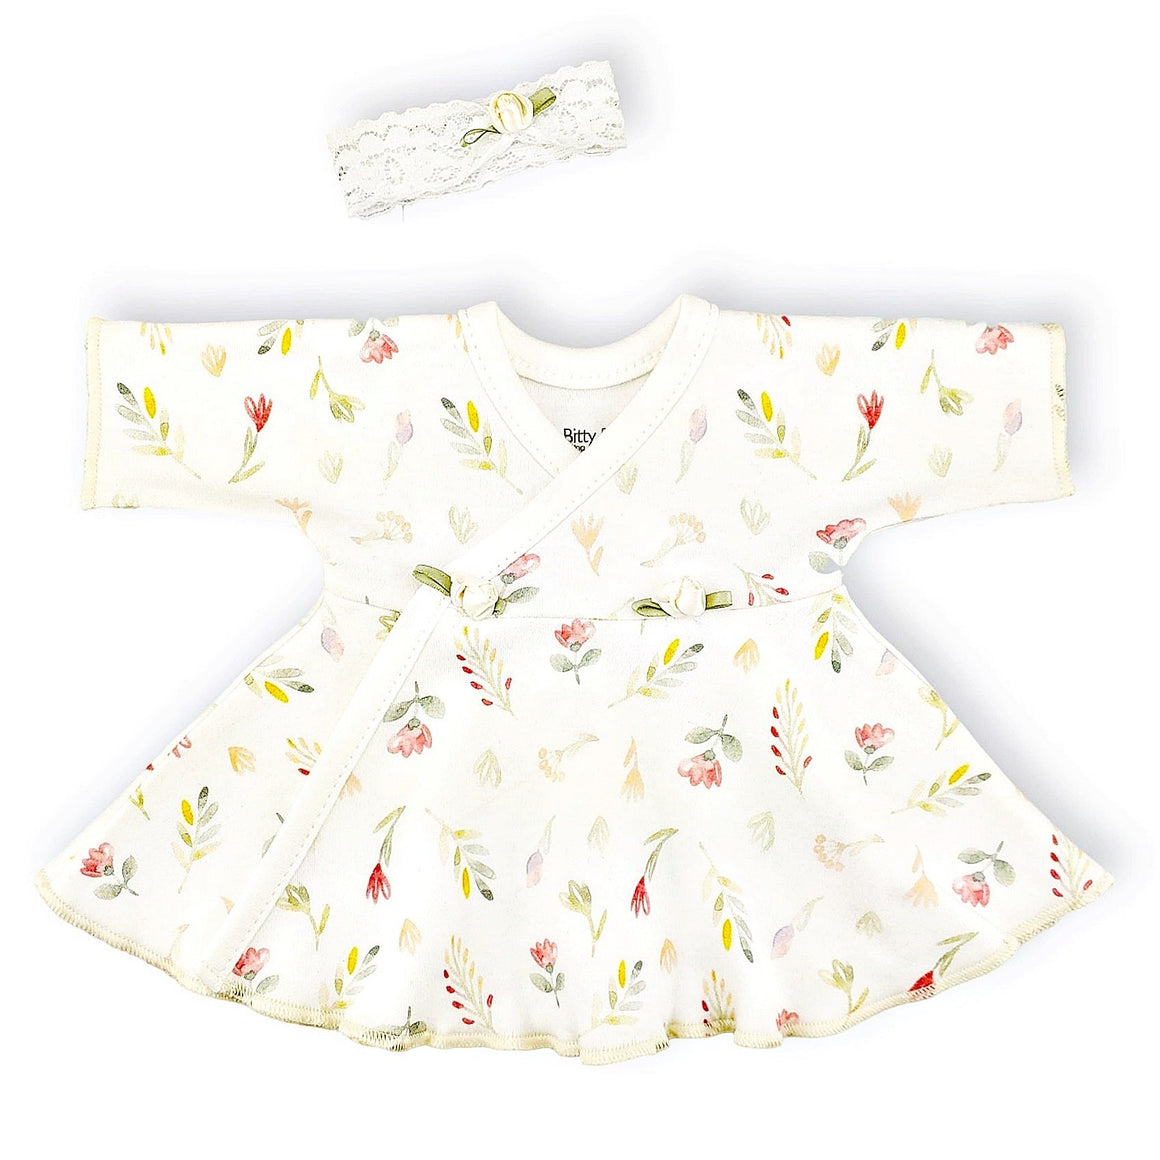 Preemie Dress + Headband // Vintage Garden-NICU Dresses-UniqueKidz